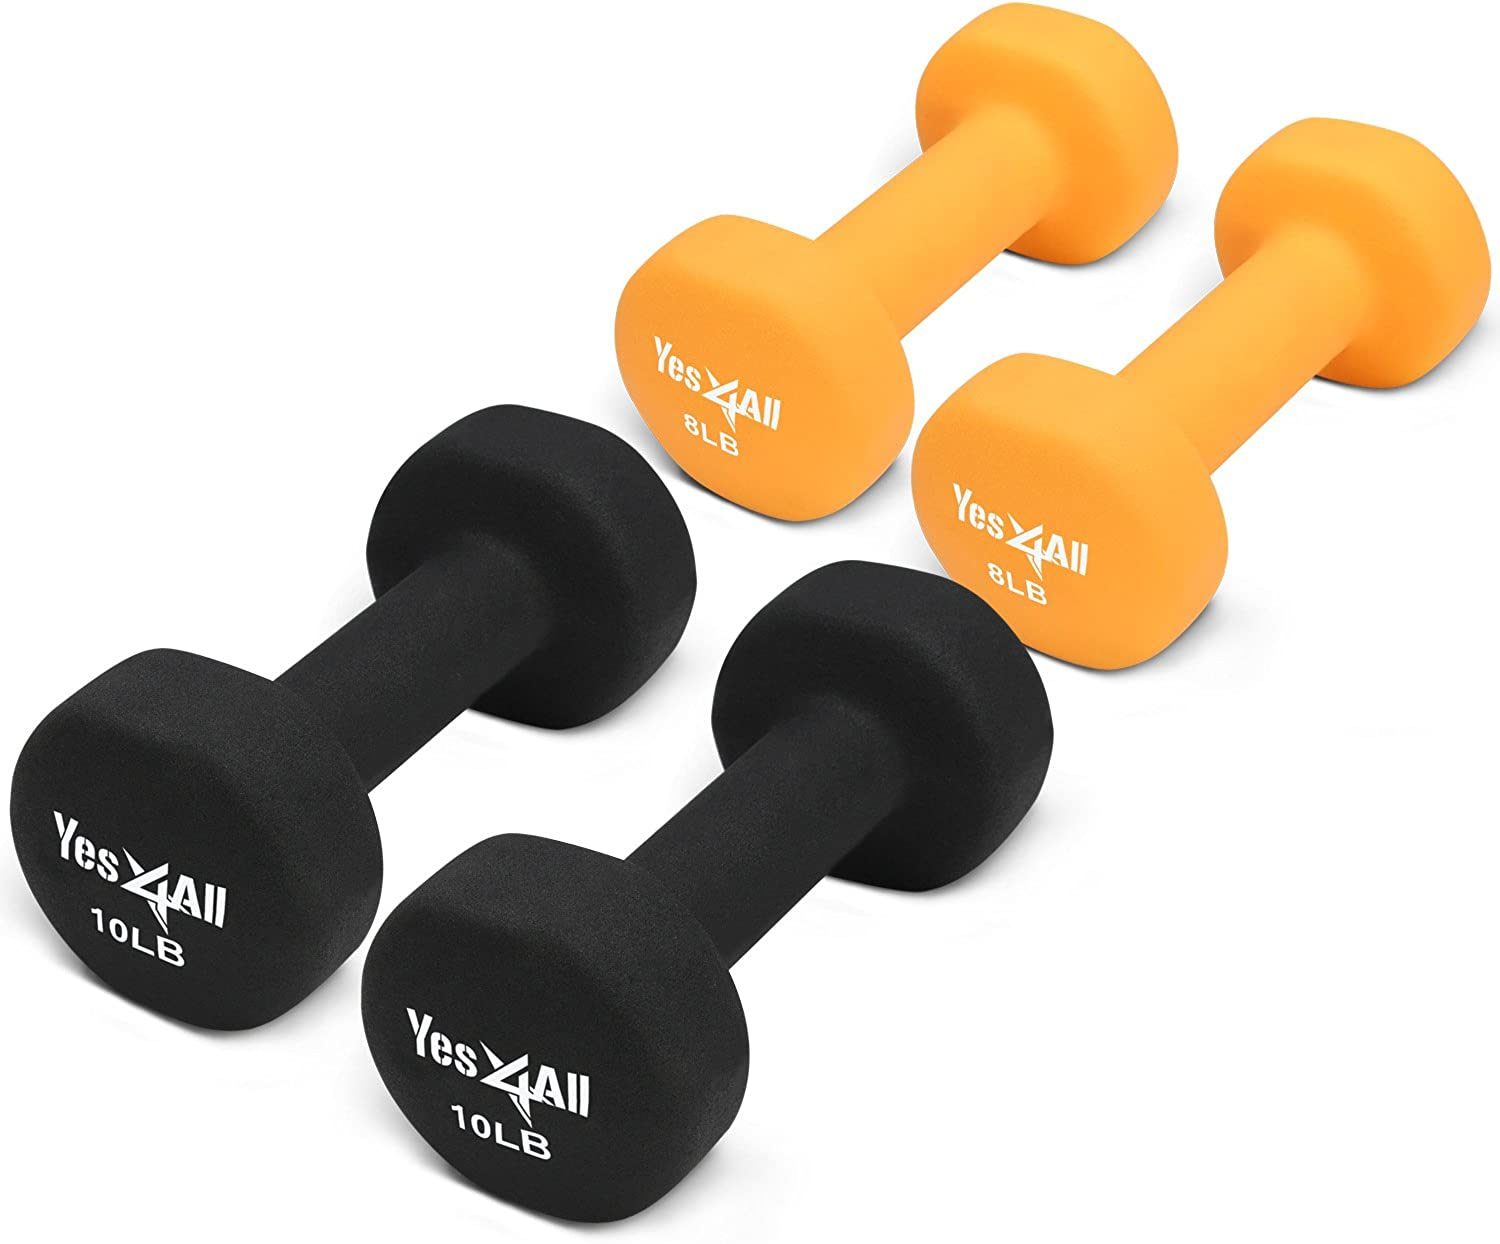 Yes4All 8 & 10 lbs Dumbbells Neoprene with Non Slip Grip – Great for Total Body Workout – Total Weight  36 lbs (Set of 2 Pairs)